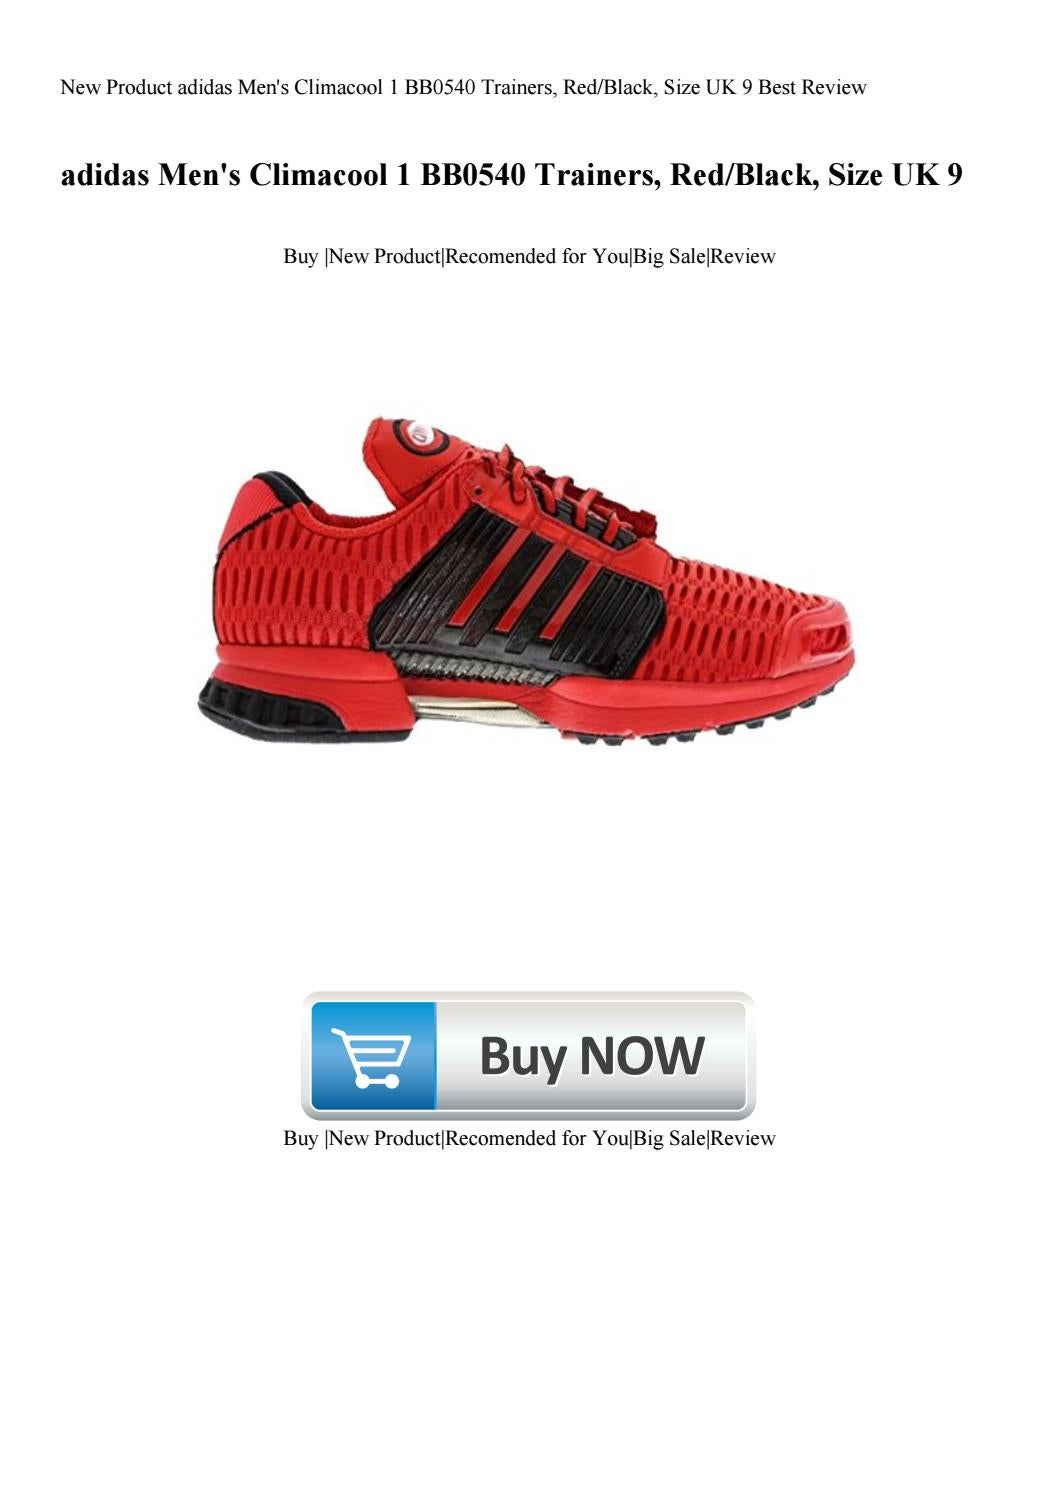 new products 55dcd eddb7 New Product adidas Men's Climacool 1 BB0540 Trainers ...